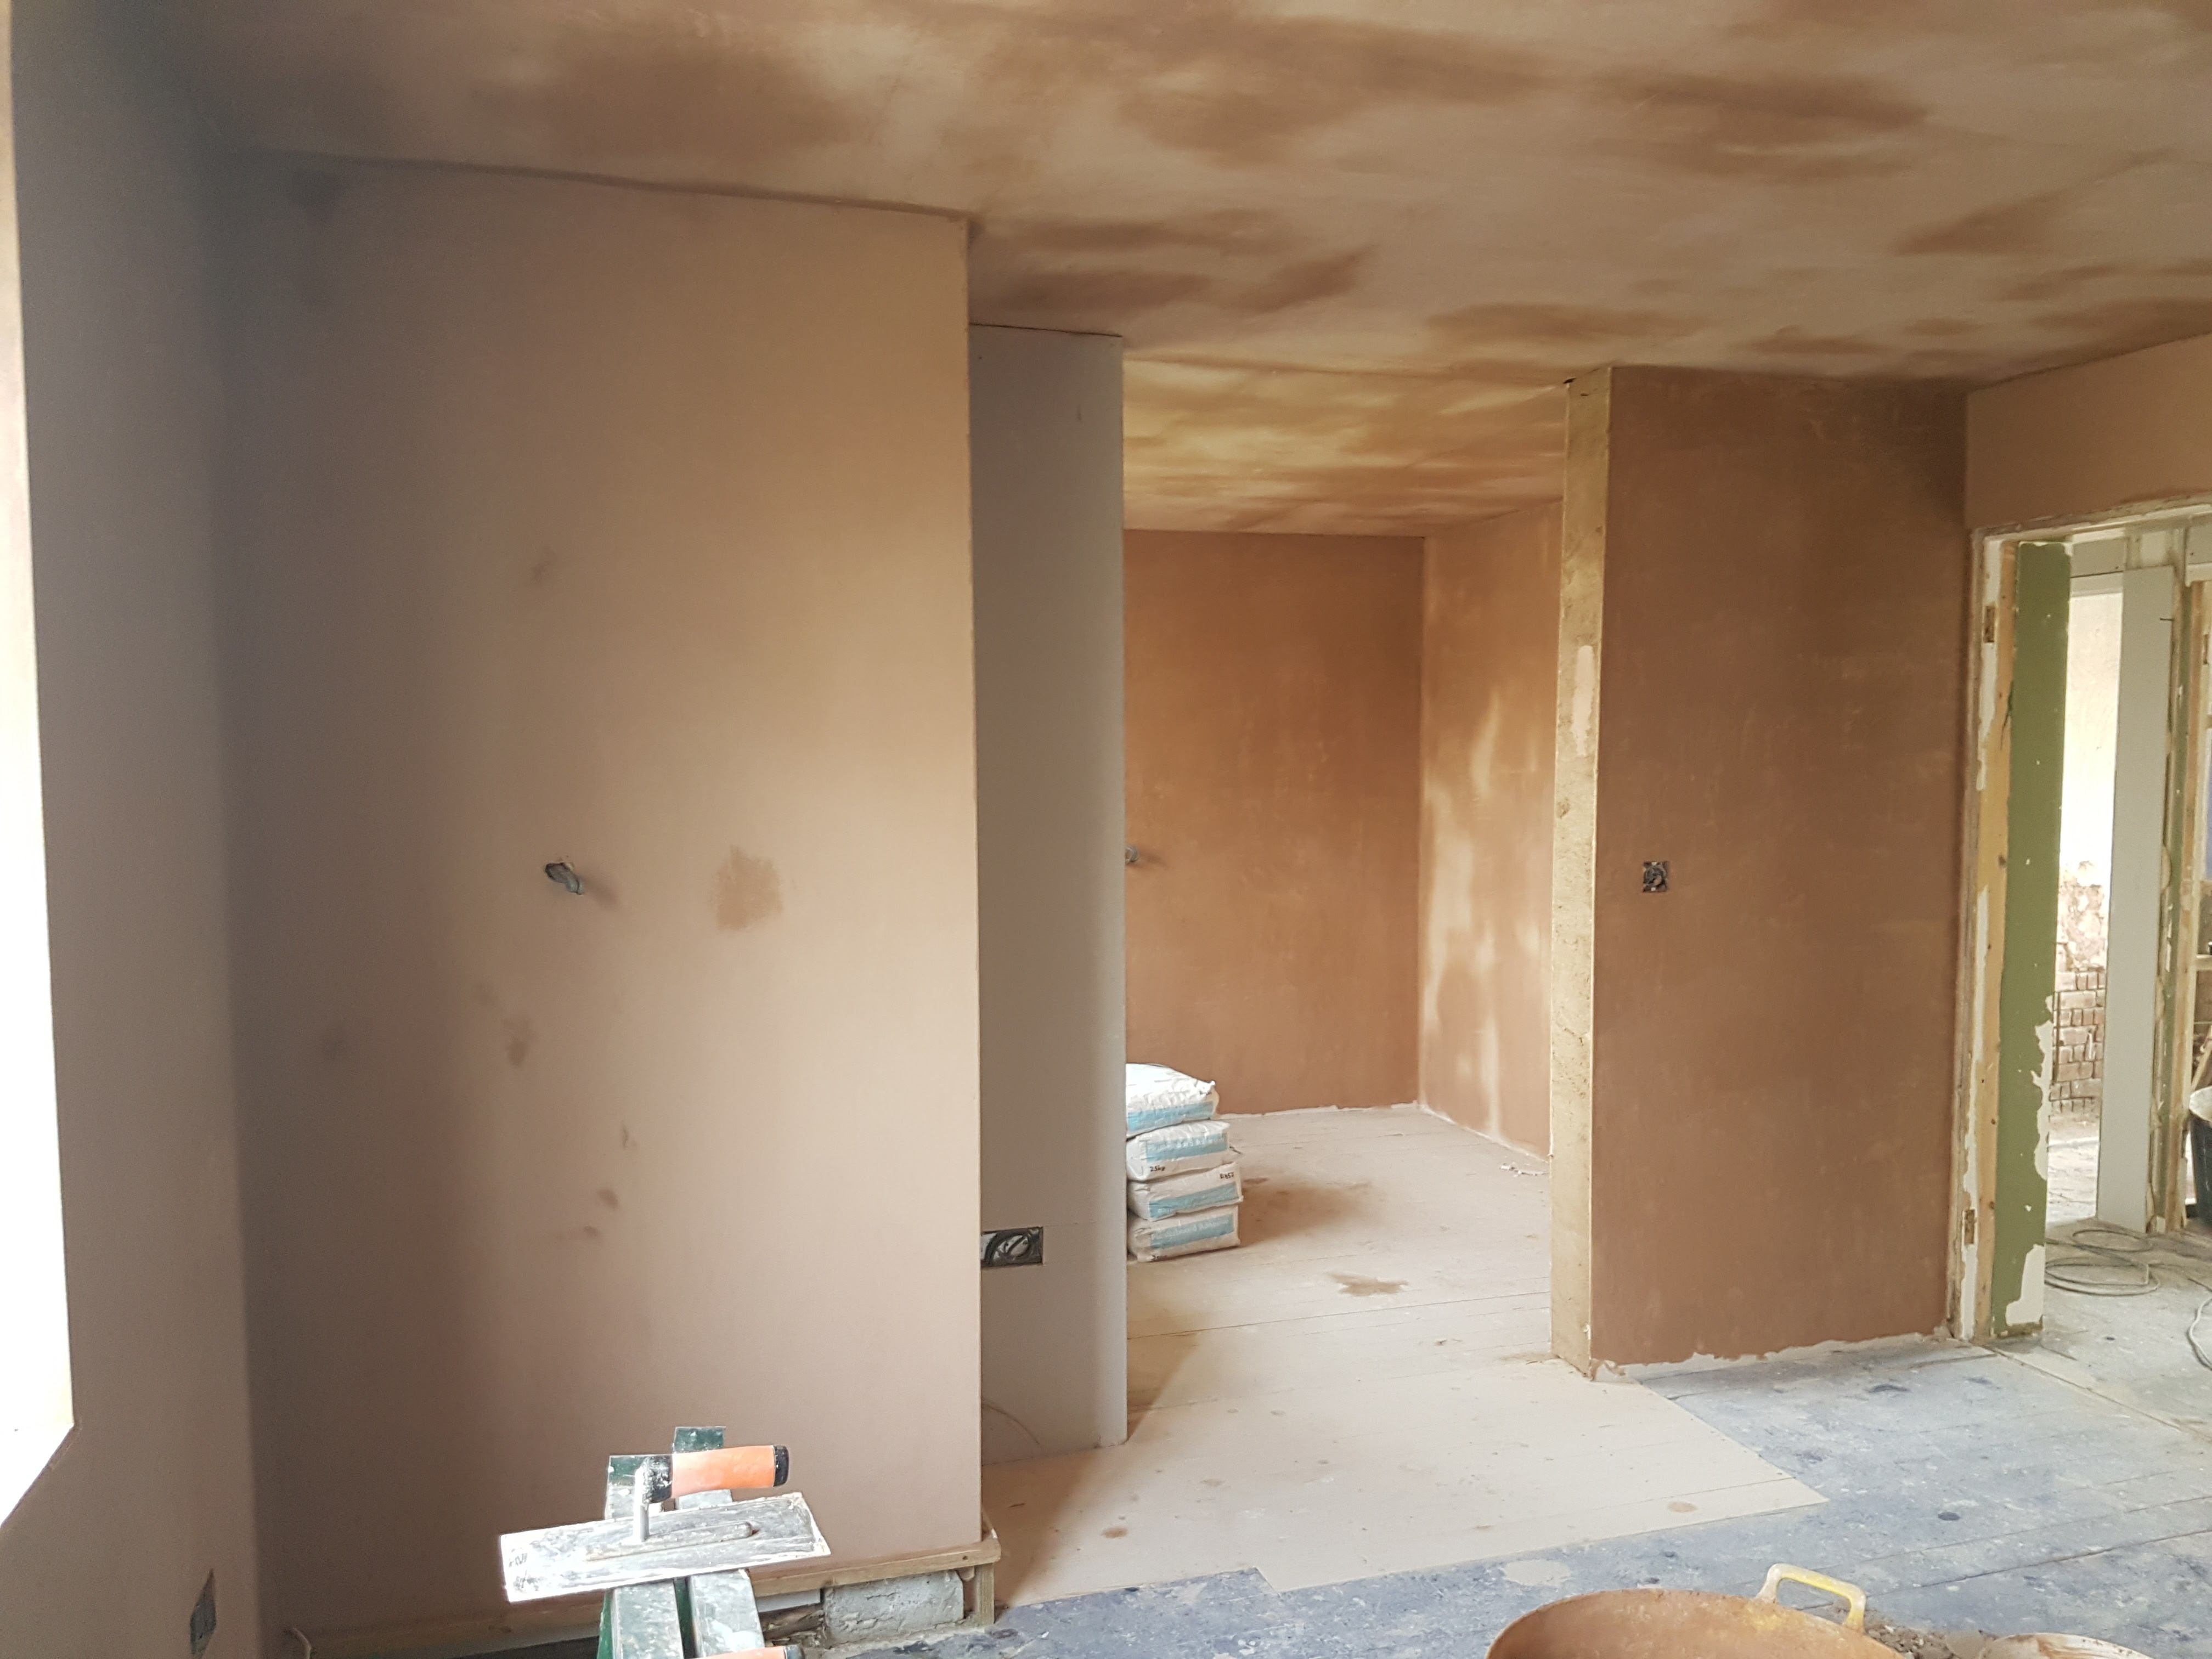 Plastered bedroom